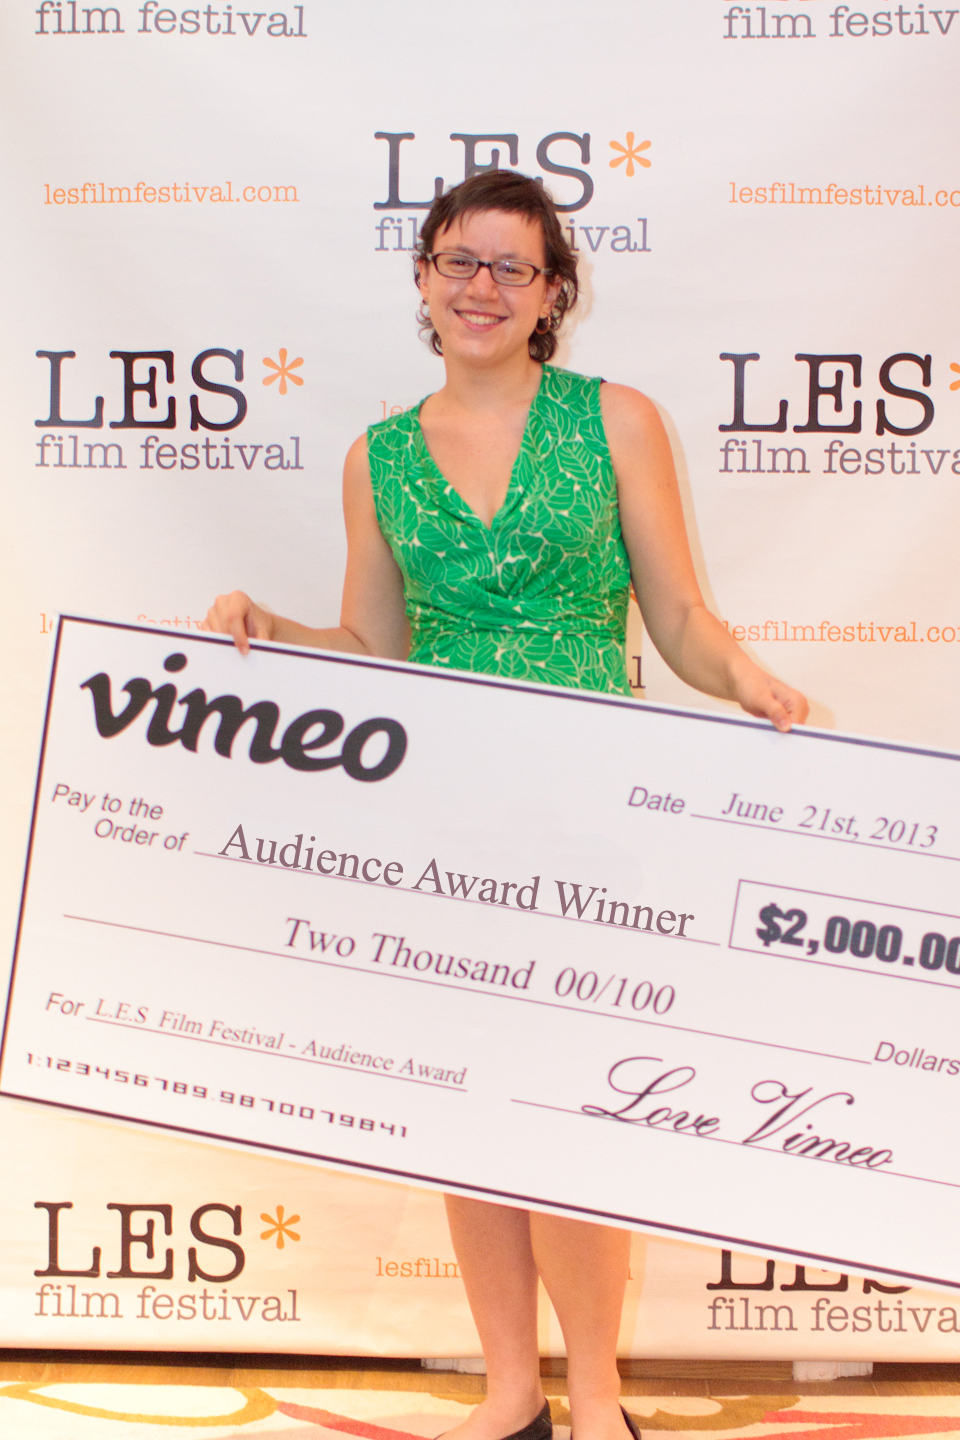 Vimeo_Check_Award.jpg